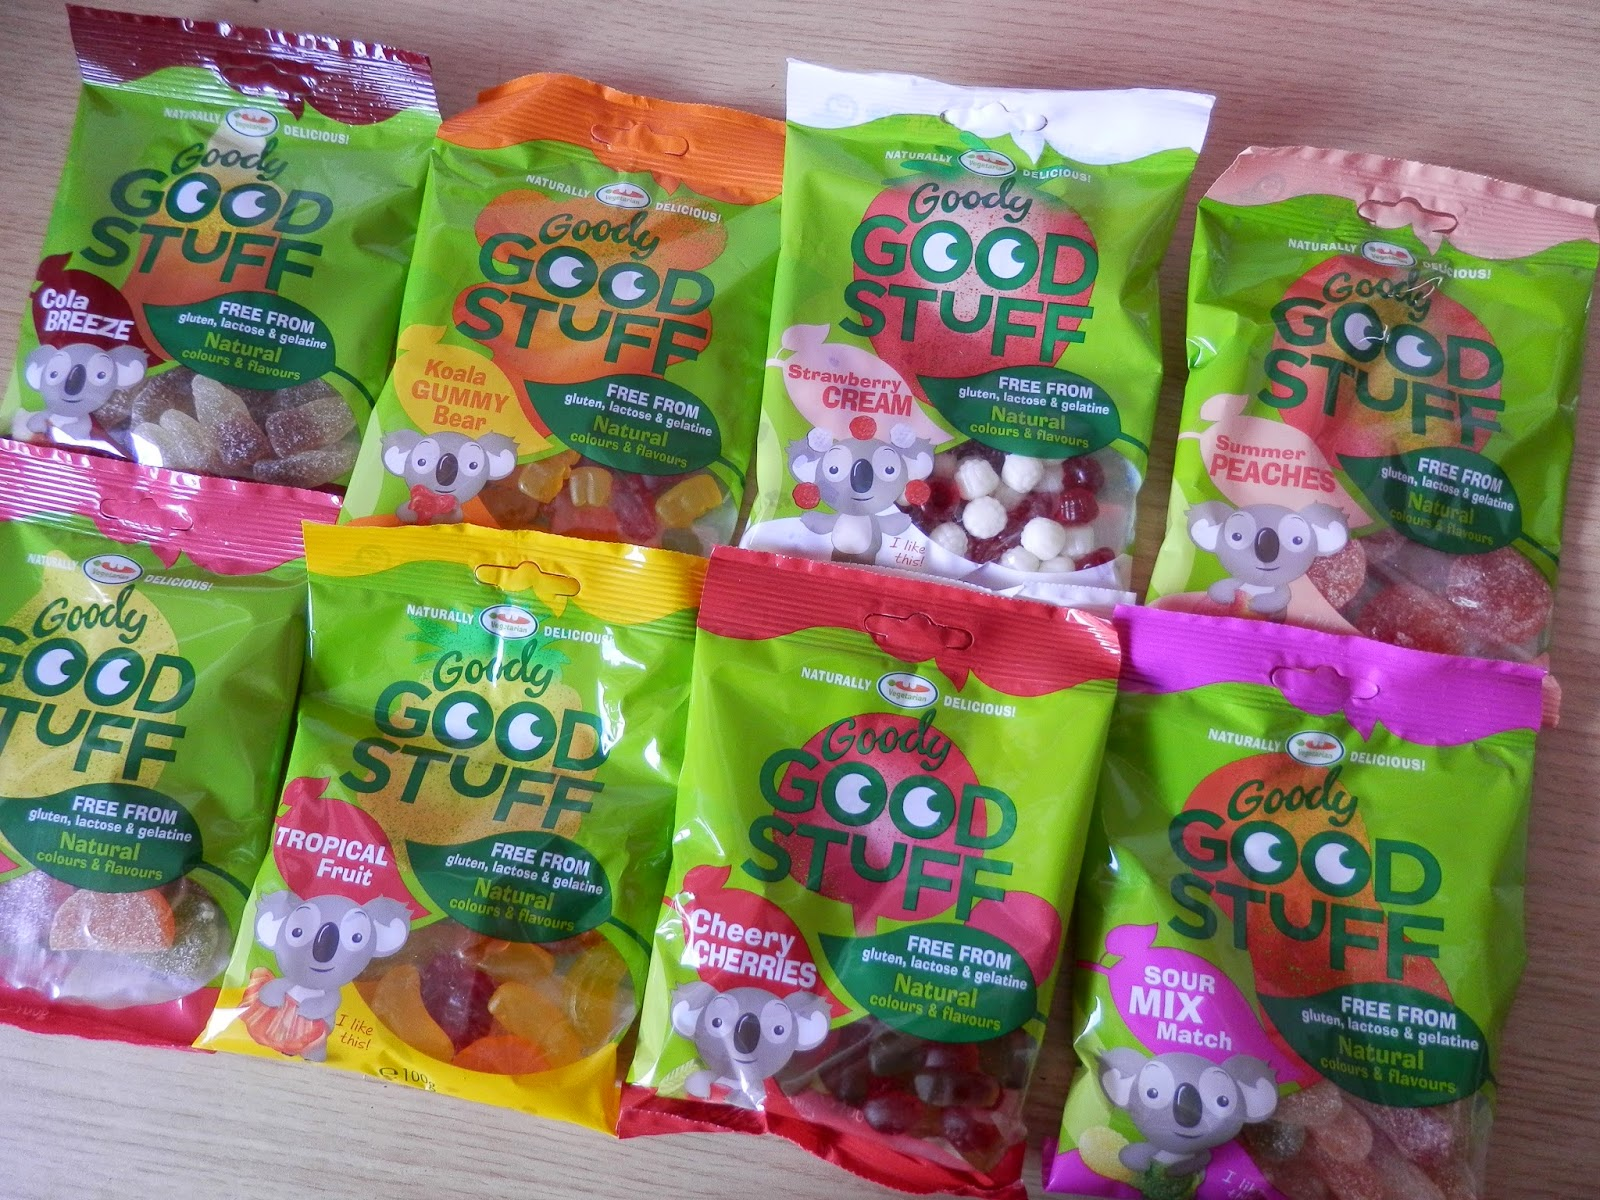 Goody Good Stuff vegan sweets secondhandsusie.blogspot.co.uk